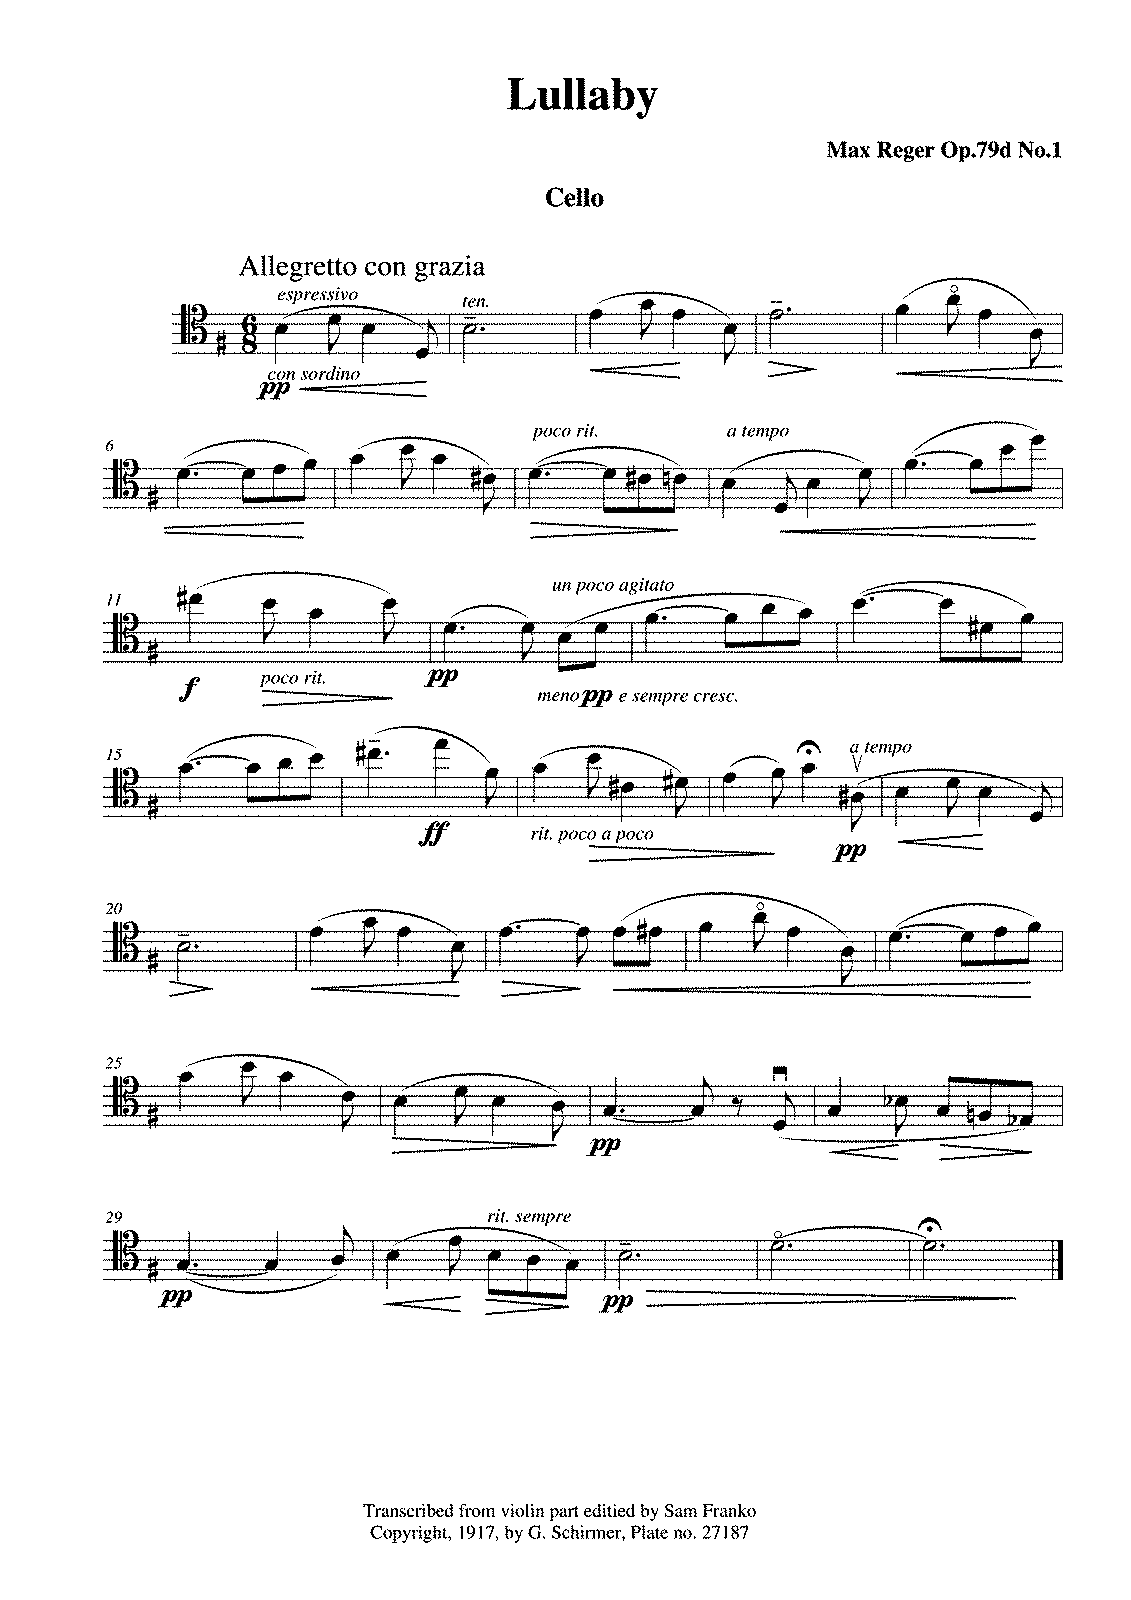 PMLP76395-Reger Lullaby Op79d No1 Cello Part.pdf